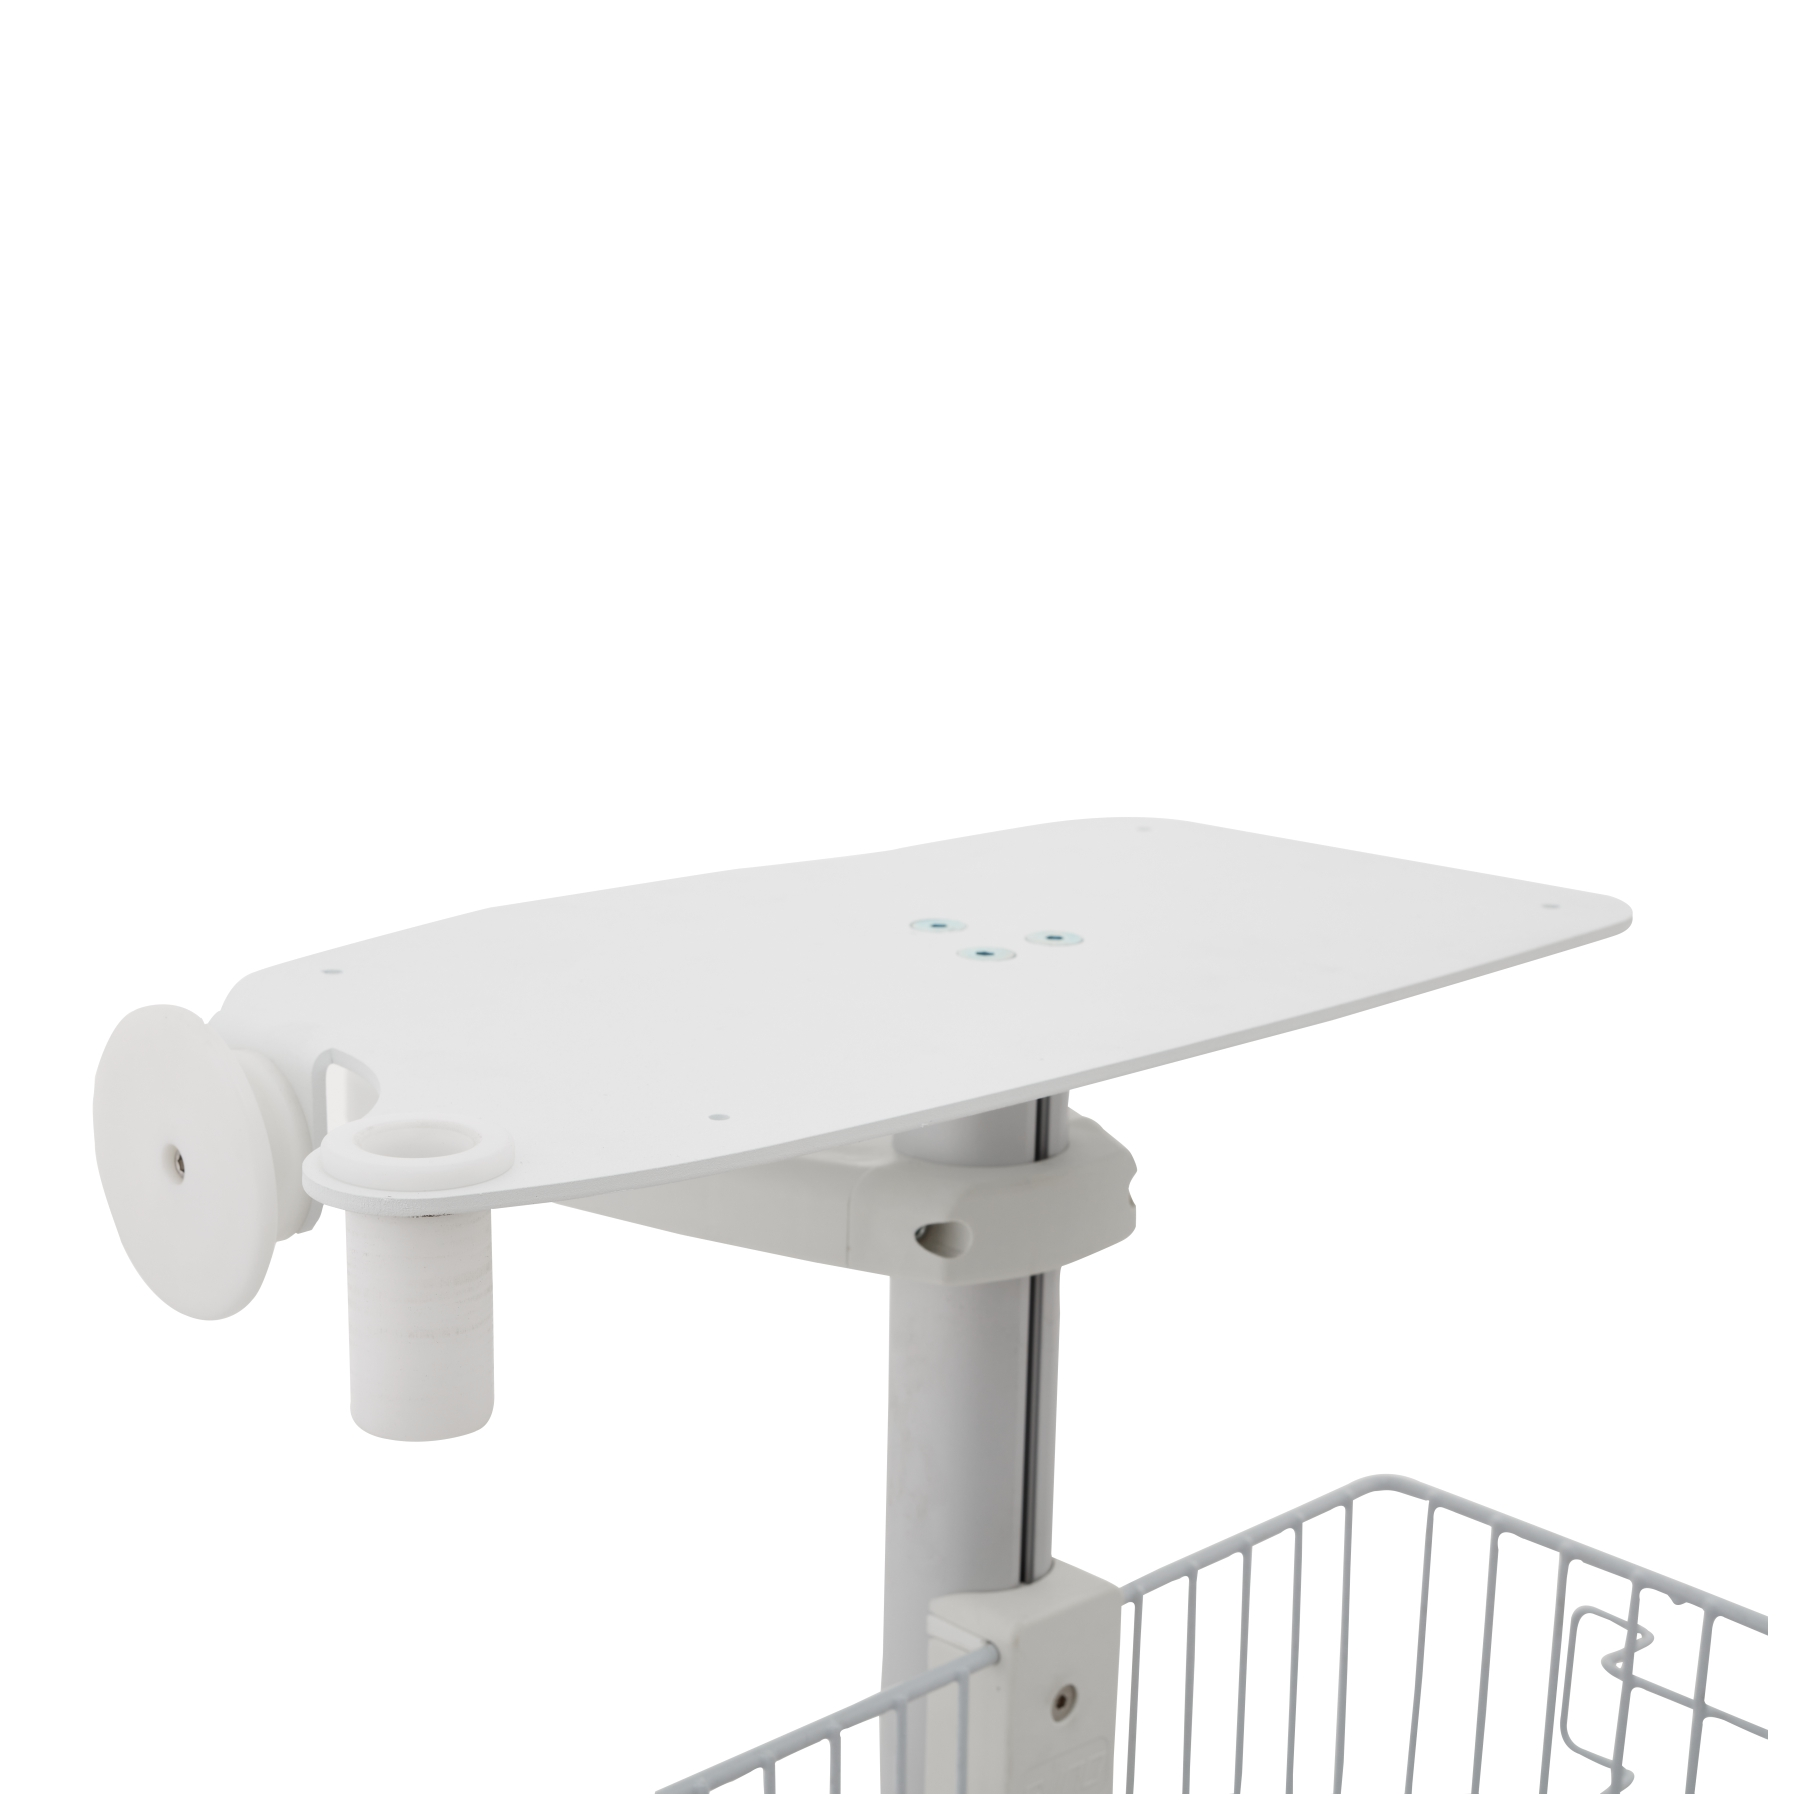 NST, Fetal Monitor Trolley, Roll Stand